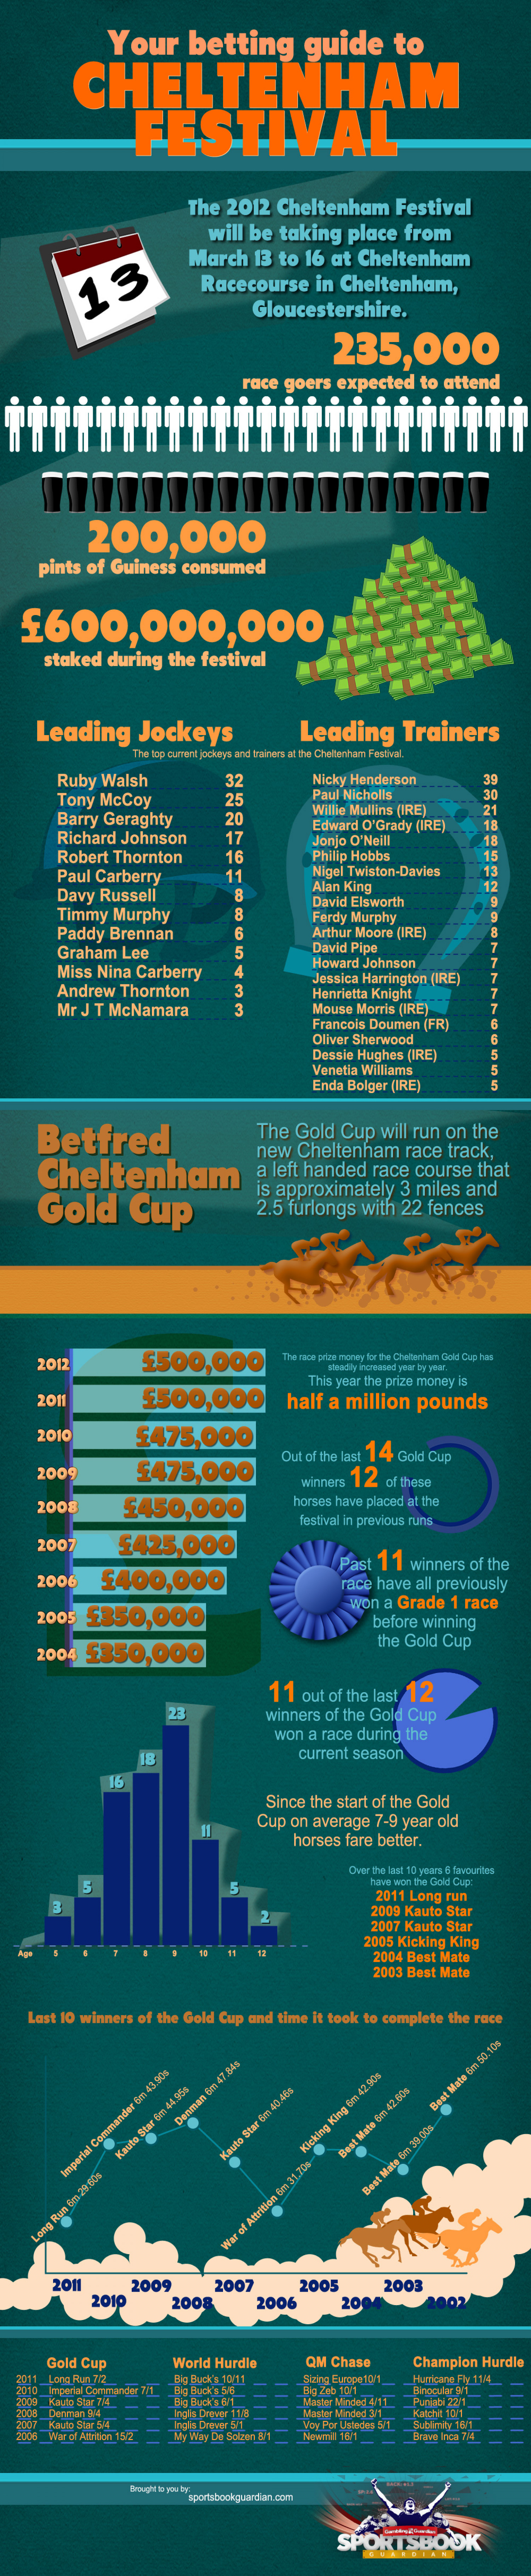 Stats for picking a winner at the Cheltenham Festival Infographic